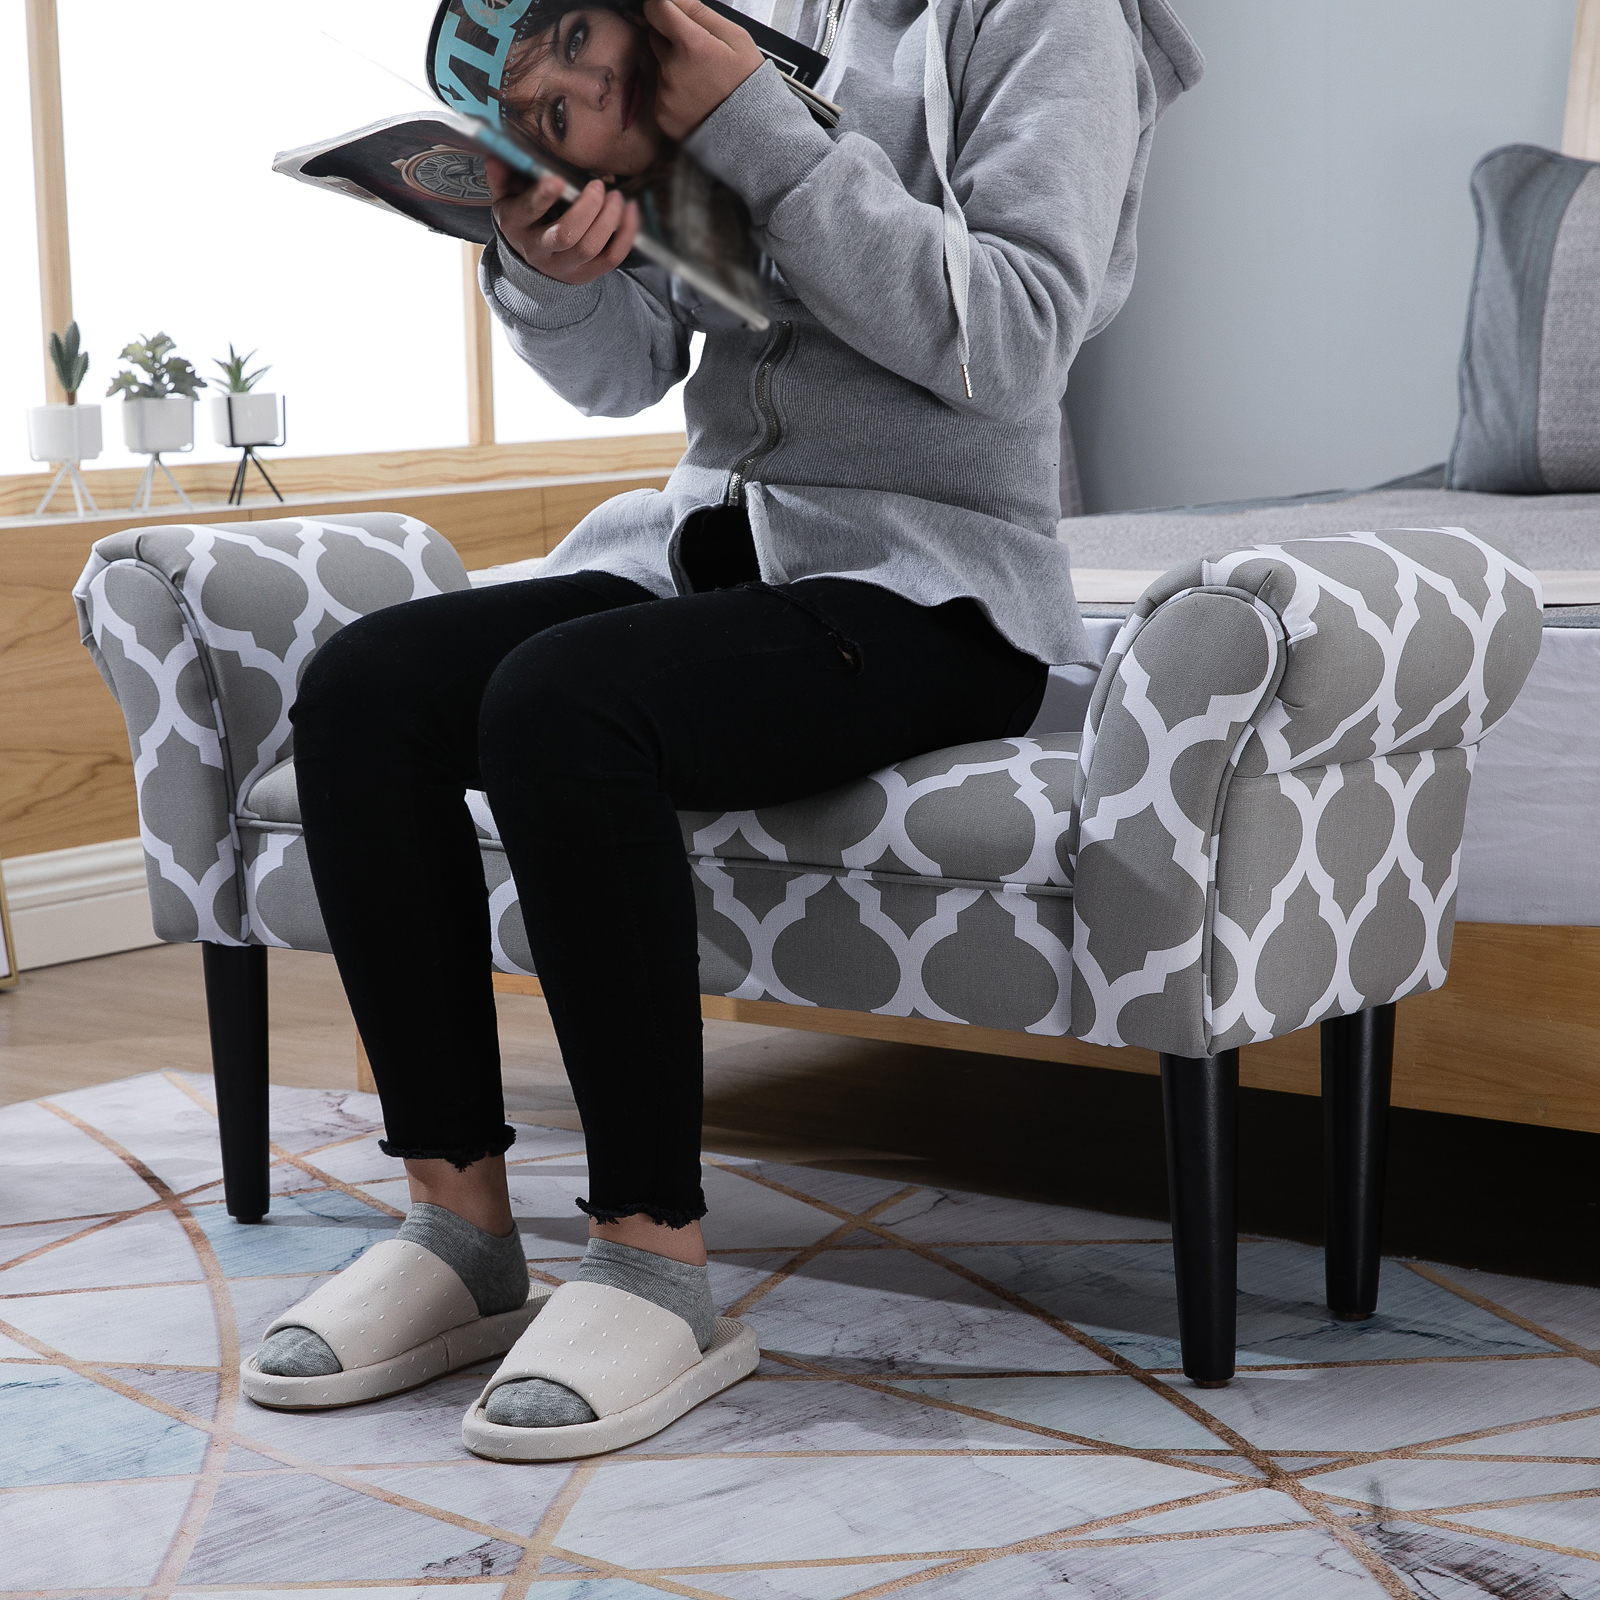 Outstanding Details About 40 Deluxe Fabric Bed Bench Bedside Bench Footstool With Arms End Of Bed Beatyapartments Chair Design Images Beatyapartmentscom